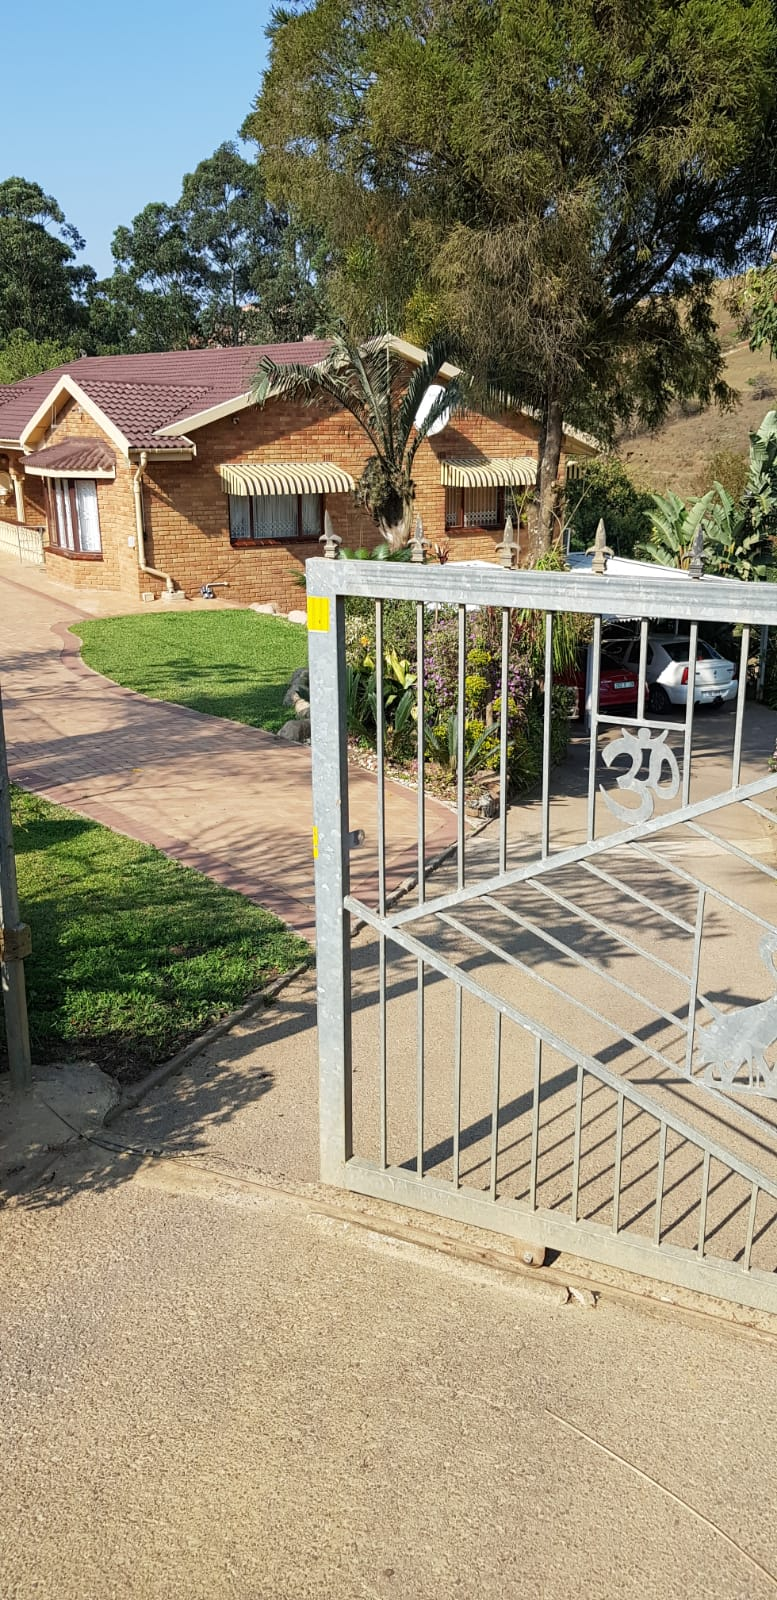 2 Bedroom, 1 Bath Countryside Equestrian Cottage for Rent, Cliffdale, R 4500p.m